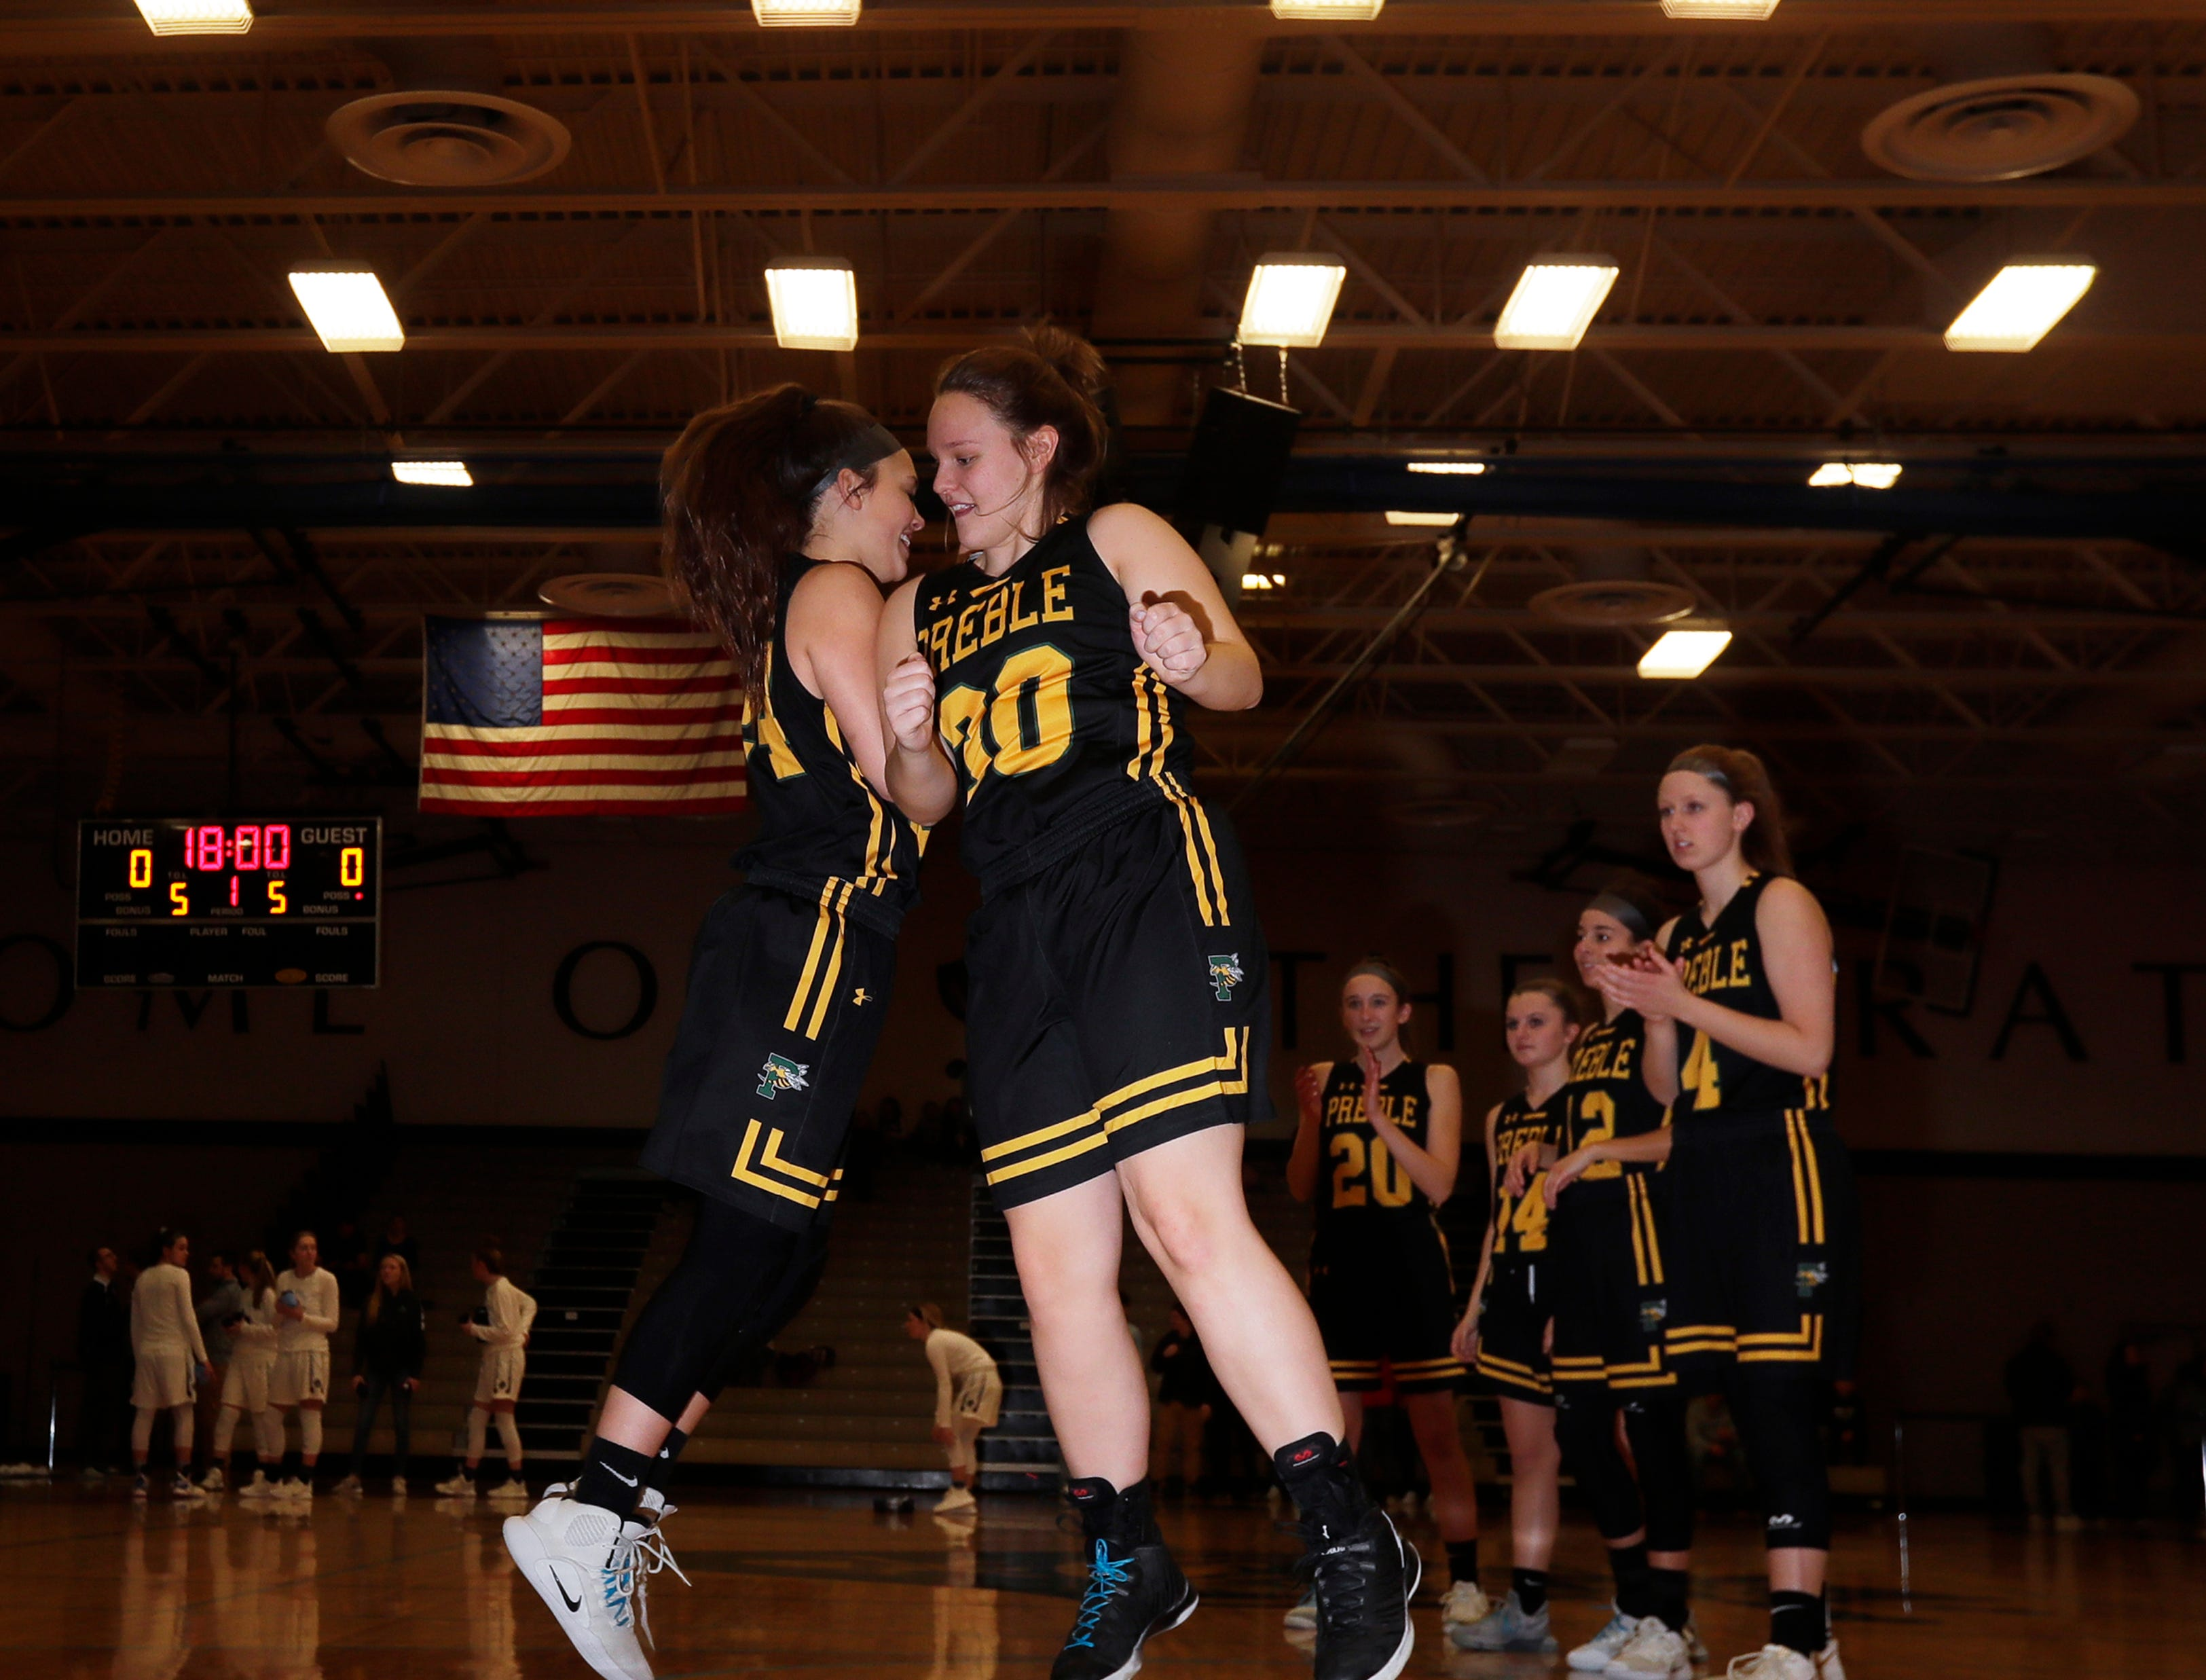 Green Bay Preble's team is introduced for a FRCC girls basketball game at Bay Port high school on Friday, February 8, 2019 in Suamico, Wis.